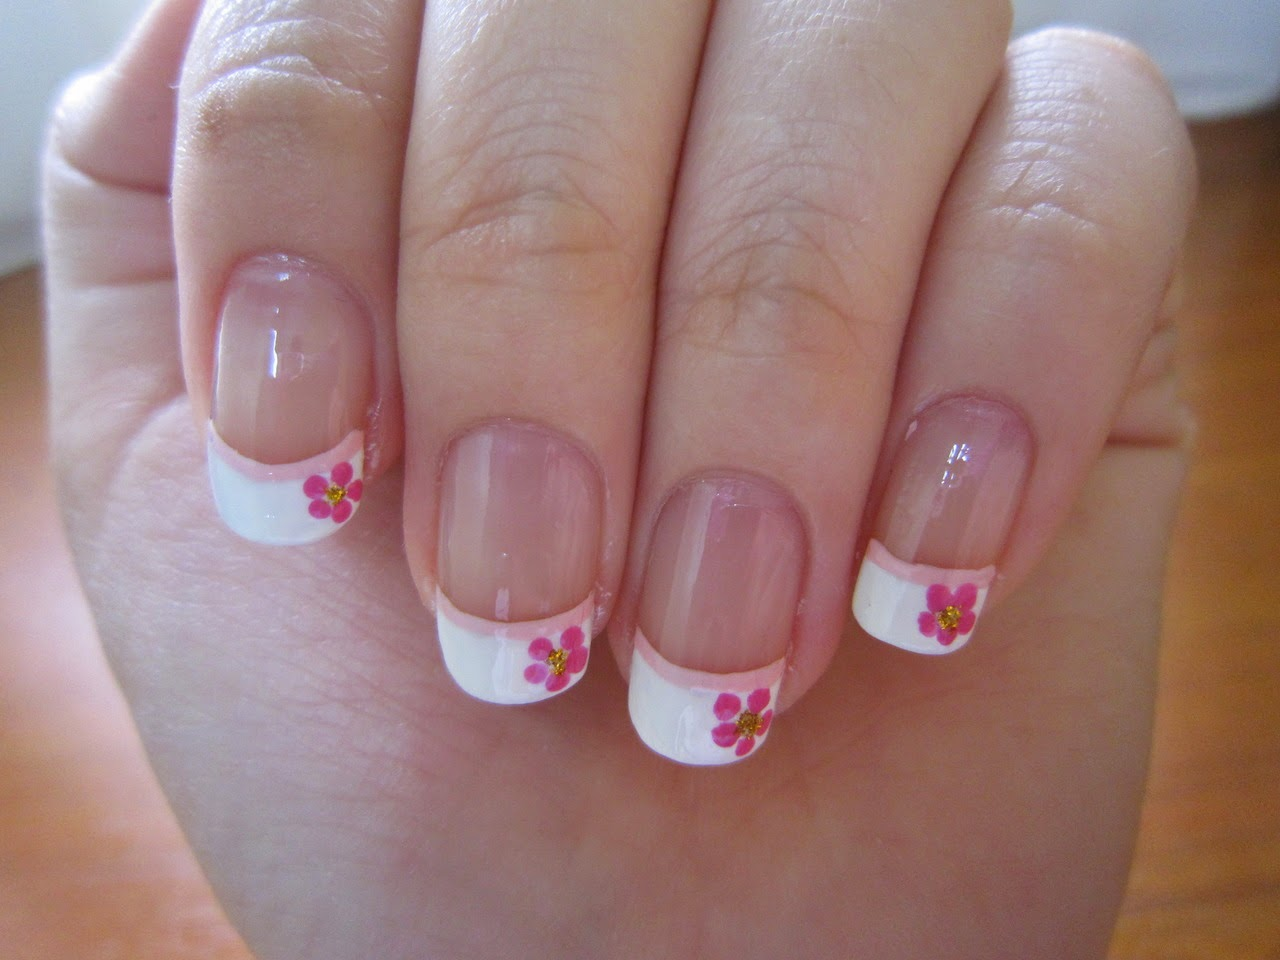 Floral French Nail Arthttp://nails-side.blogspot.com/